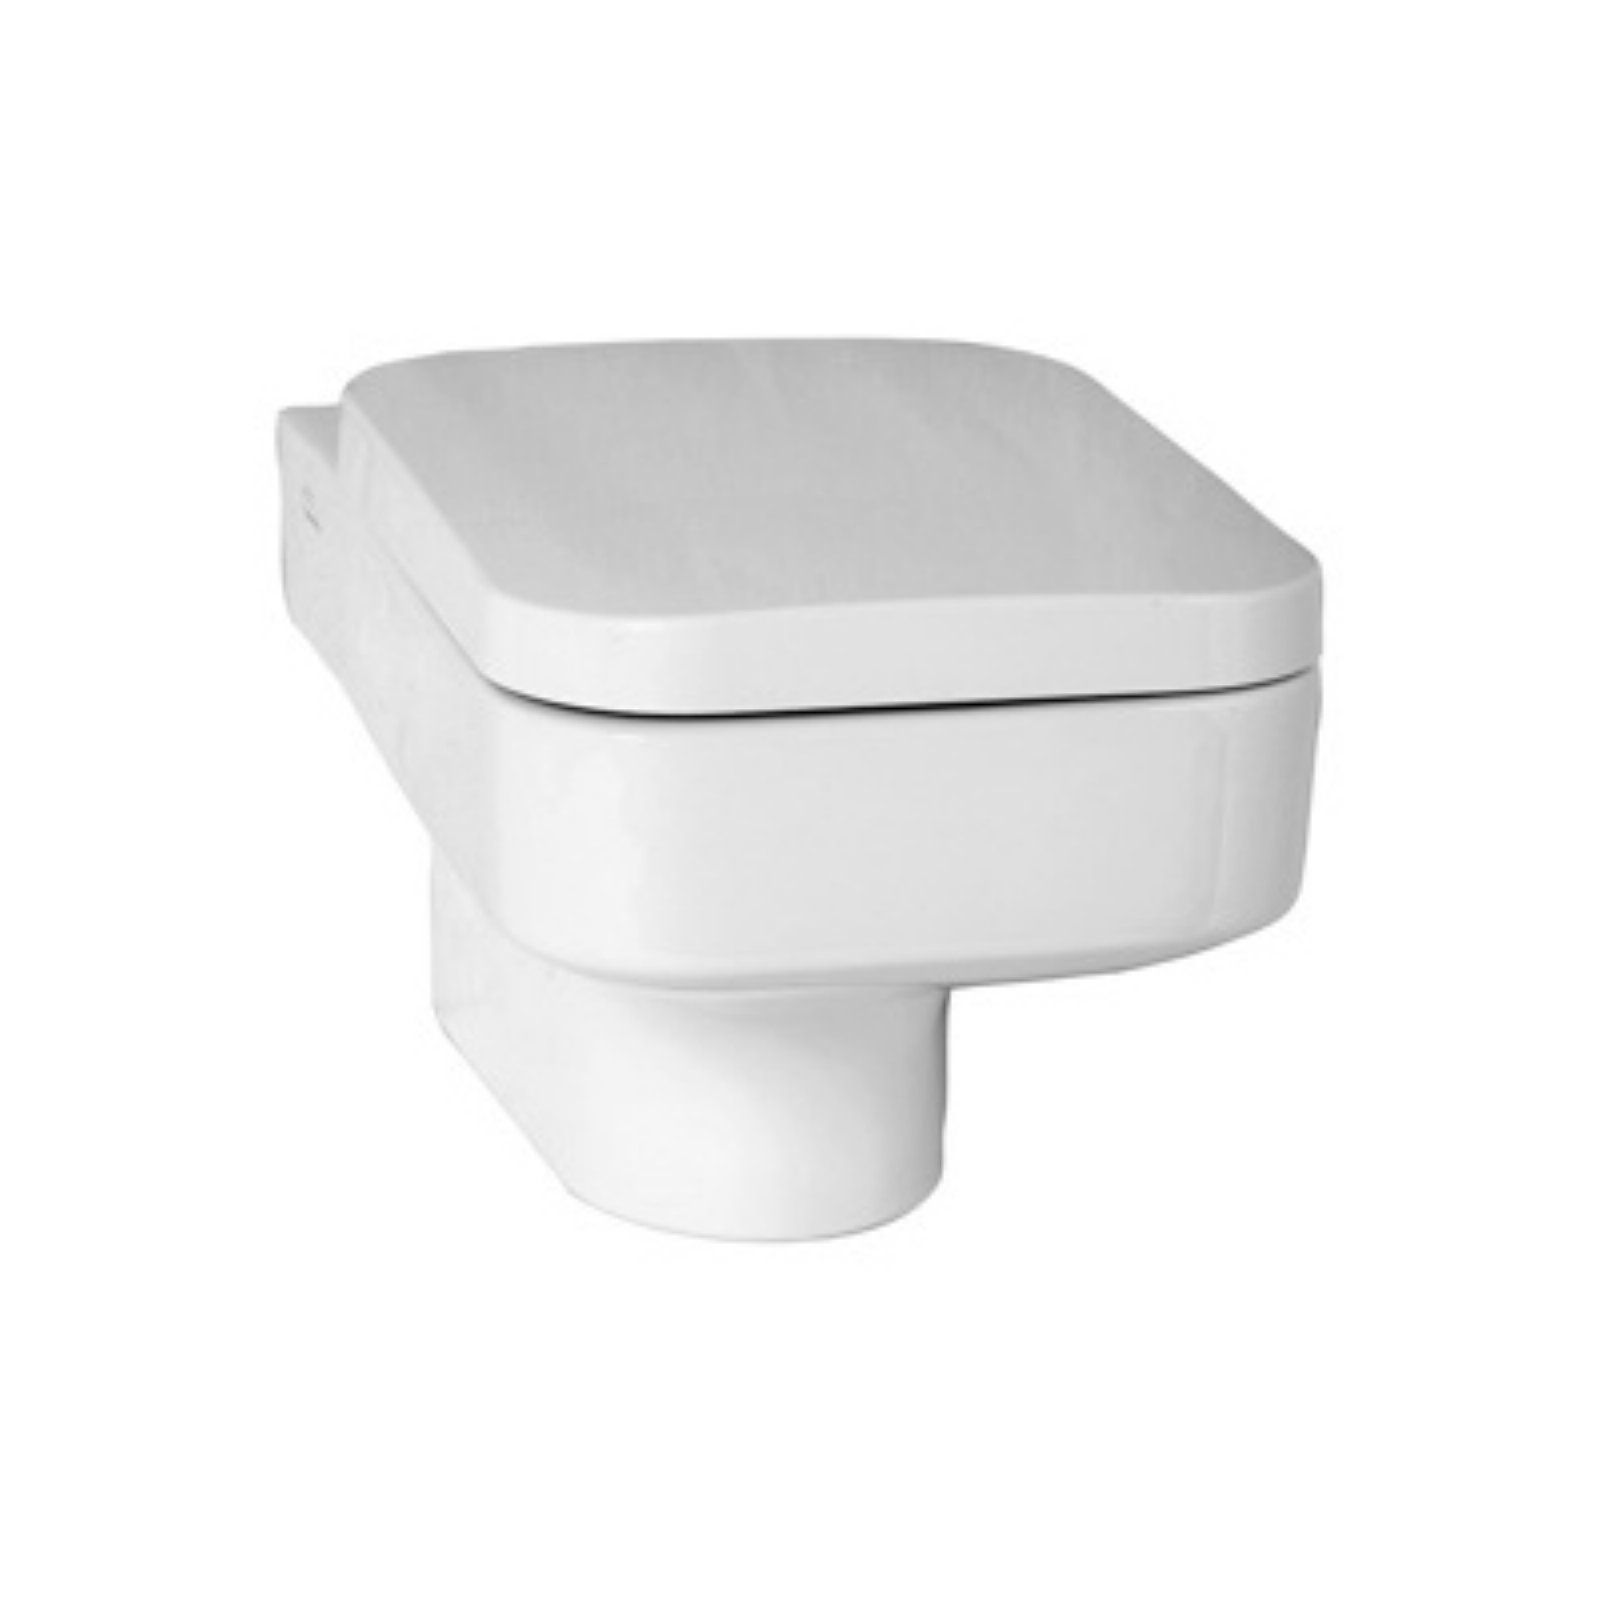 Phenomenal Vitra By Nameeks Wj Toilet Products In 2019 Toilet Bowl Ocoug Best Dining Table And Chair Ideas Images Ocougorg